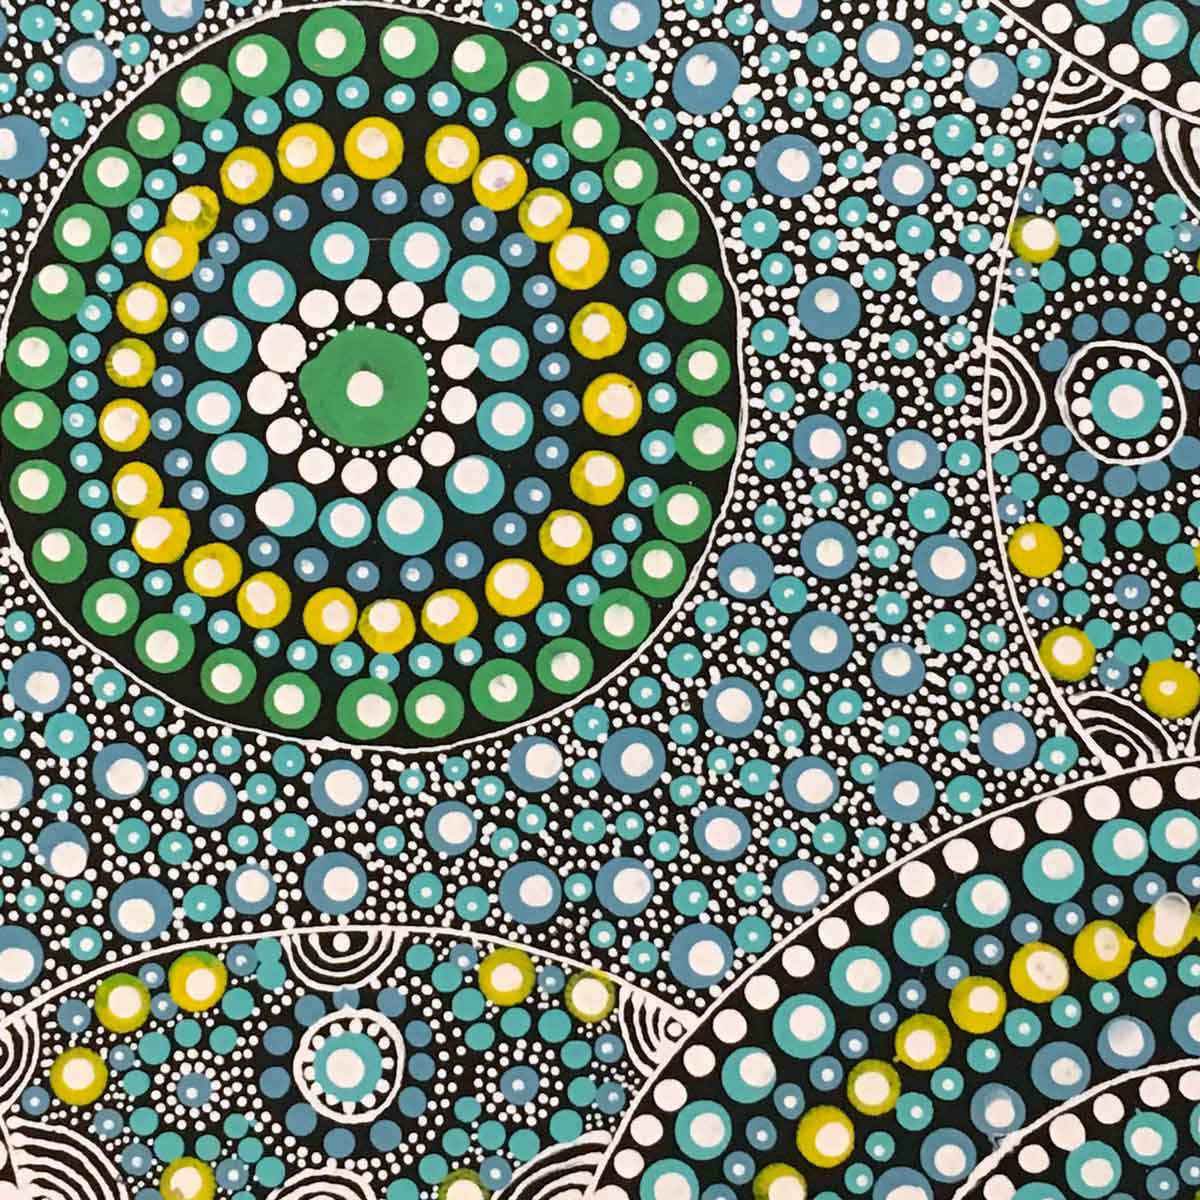 Alpar Seed Story by Maggie Bird Mpetyane | Stretched. Australian Aboriginal Art.